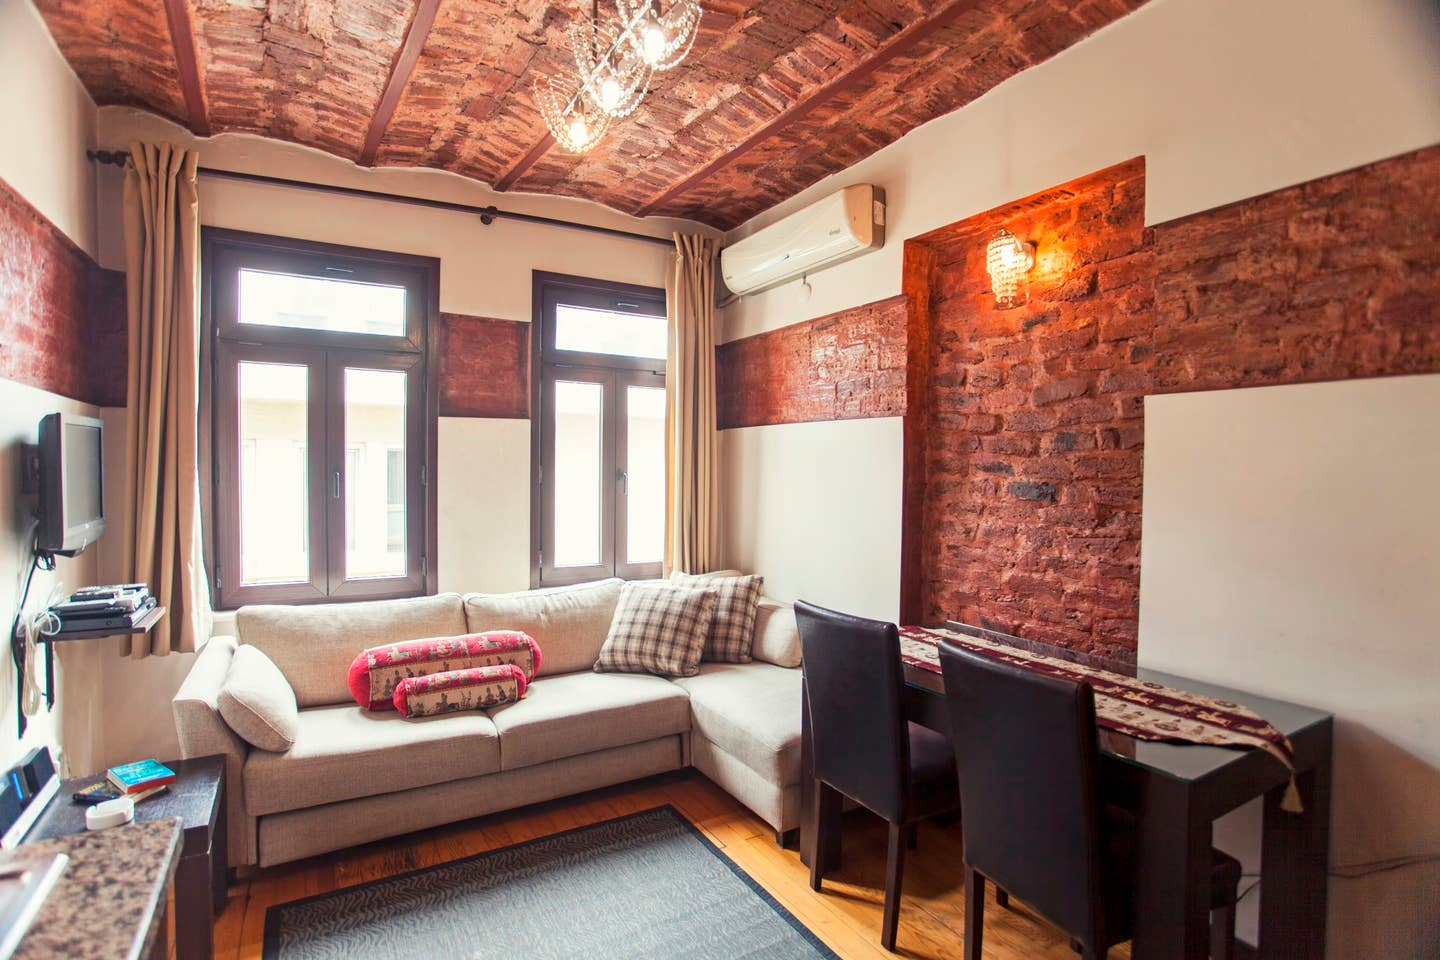 Best Airbnbs in Istanbul 2020